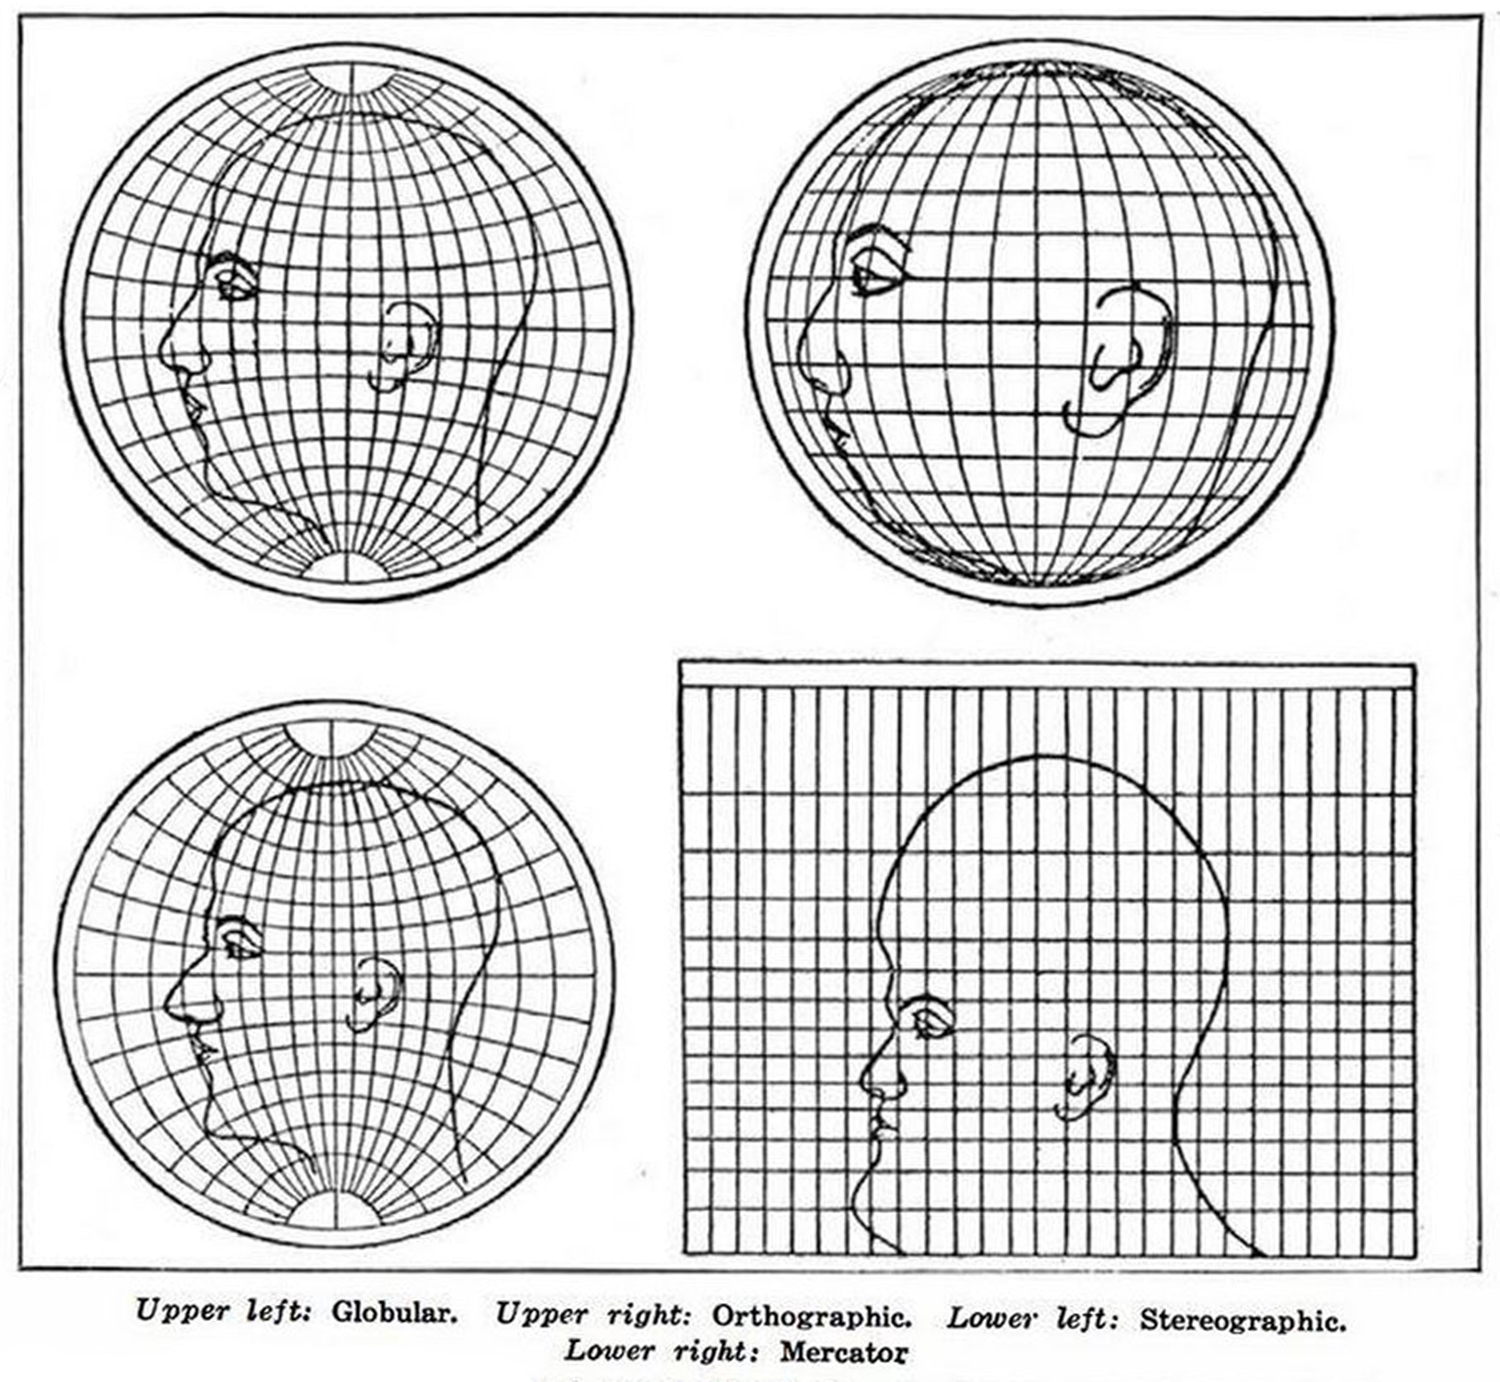 map-projections-head-distortion-casey-cripe.jpg